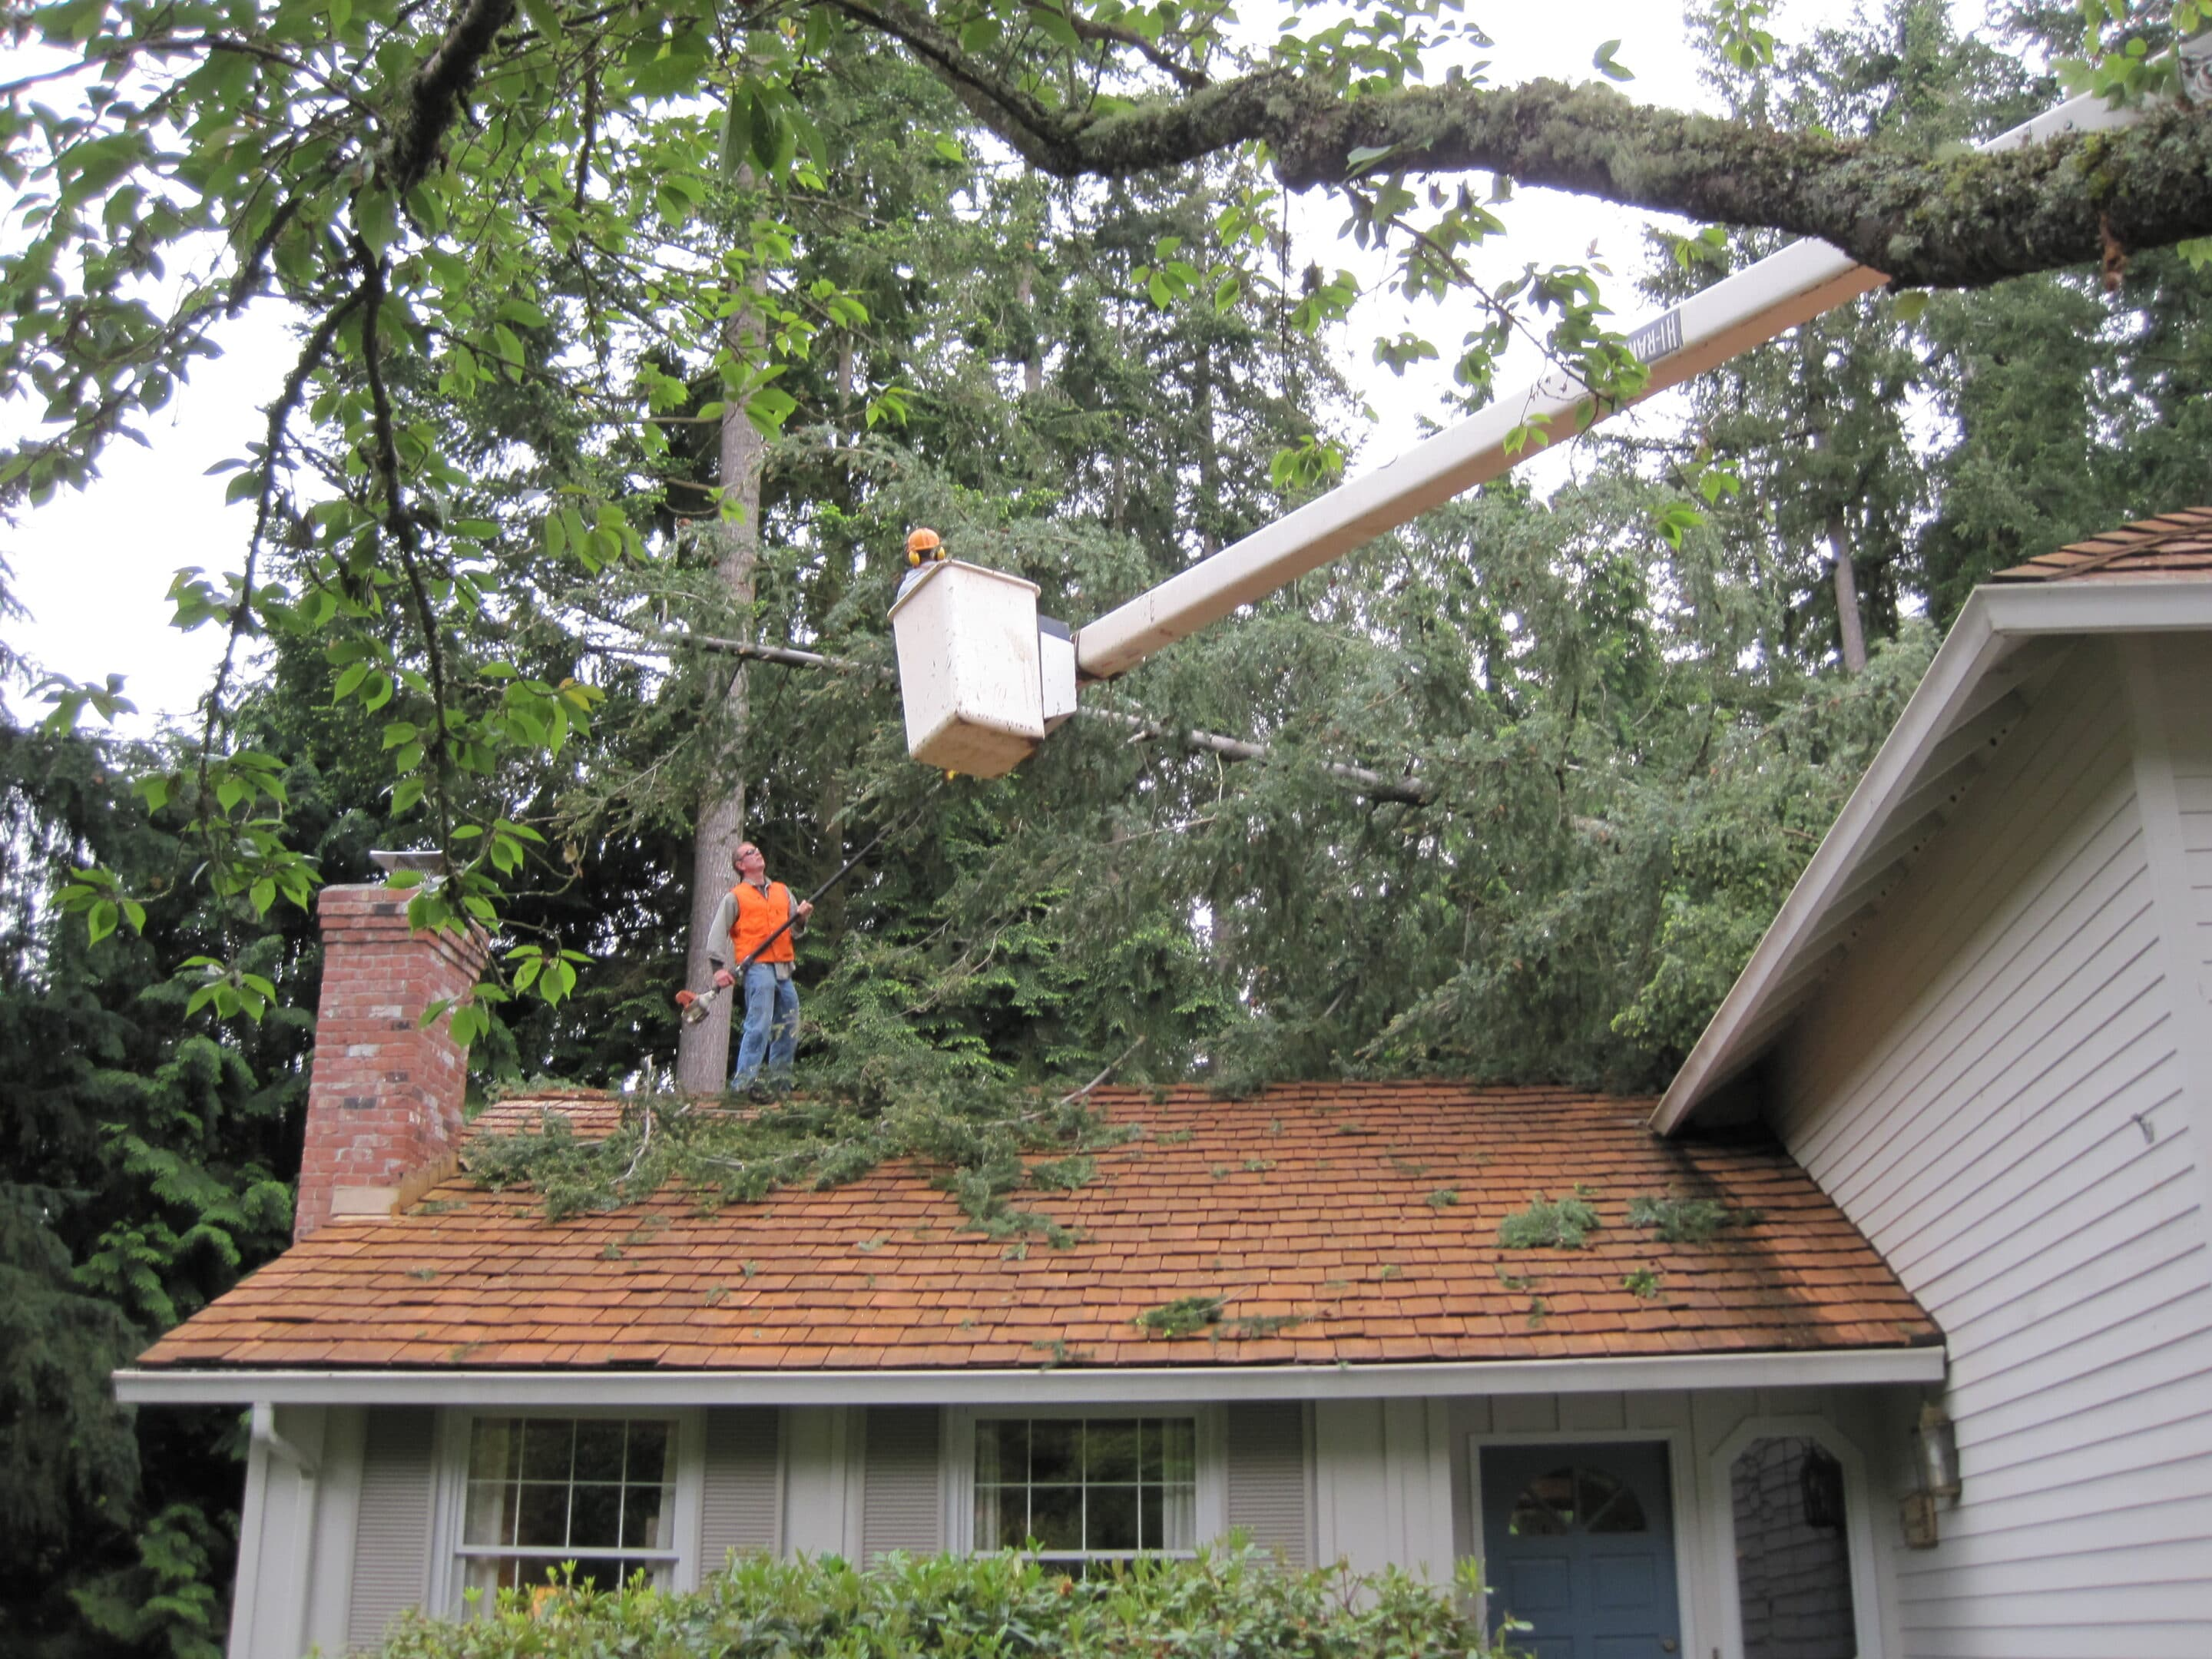 structural engineering to repair roof